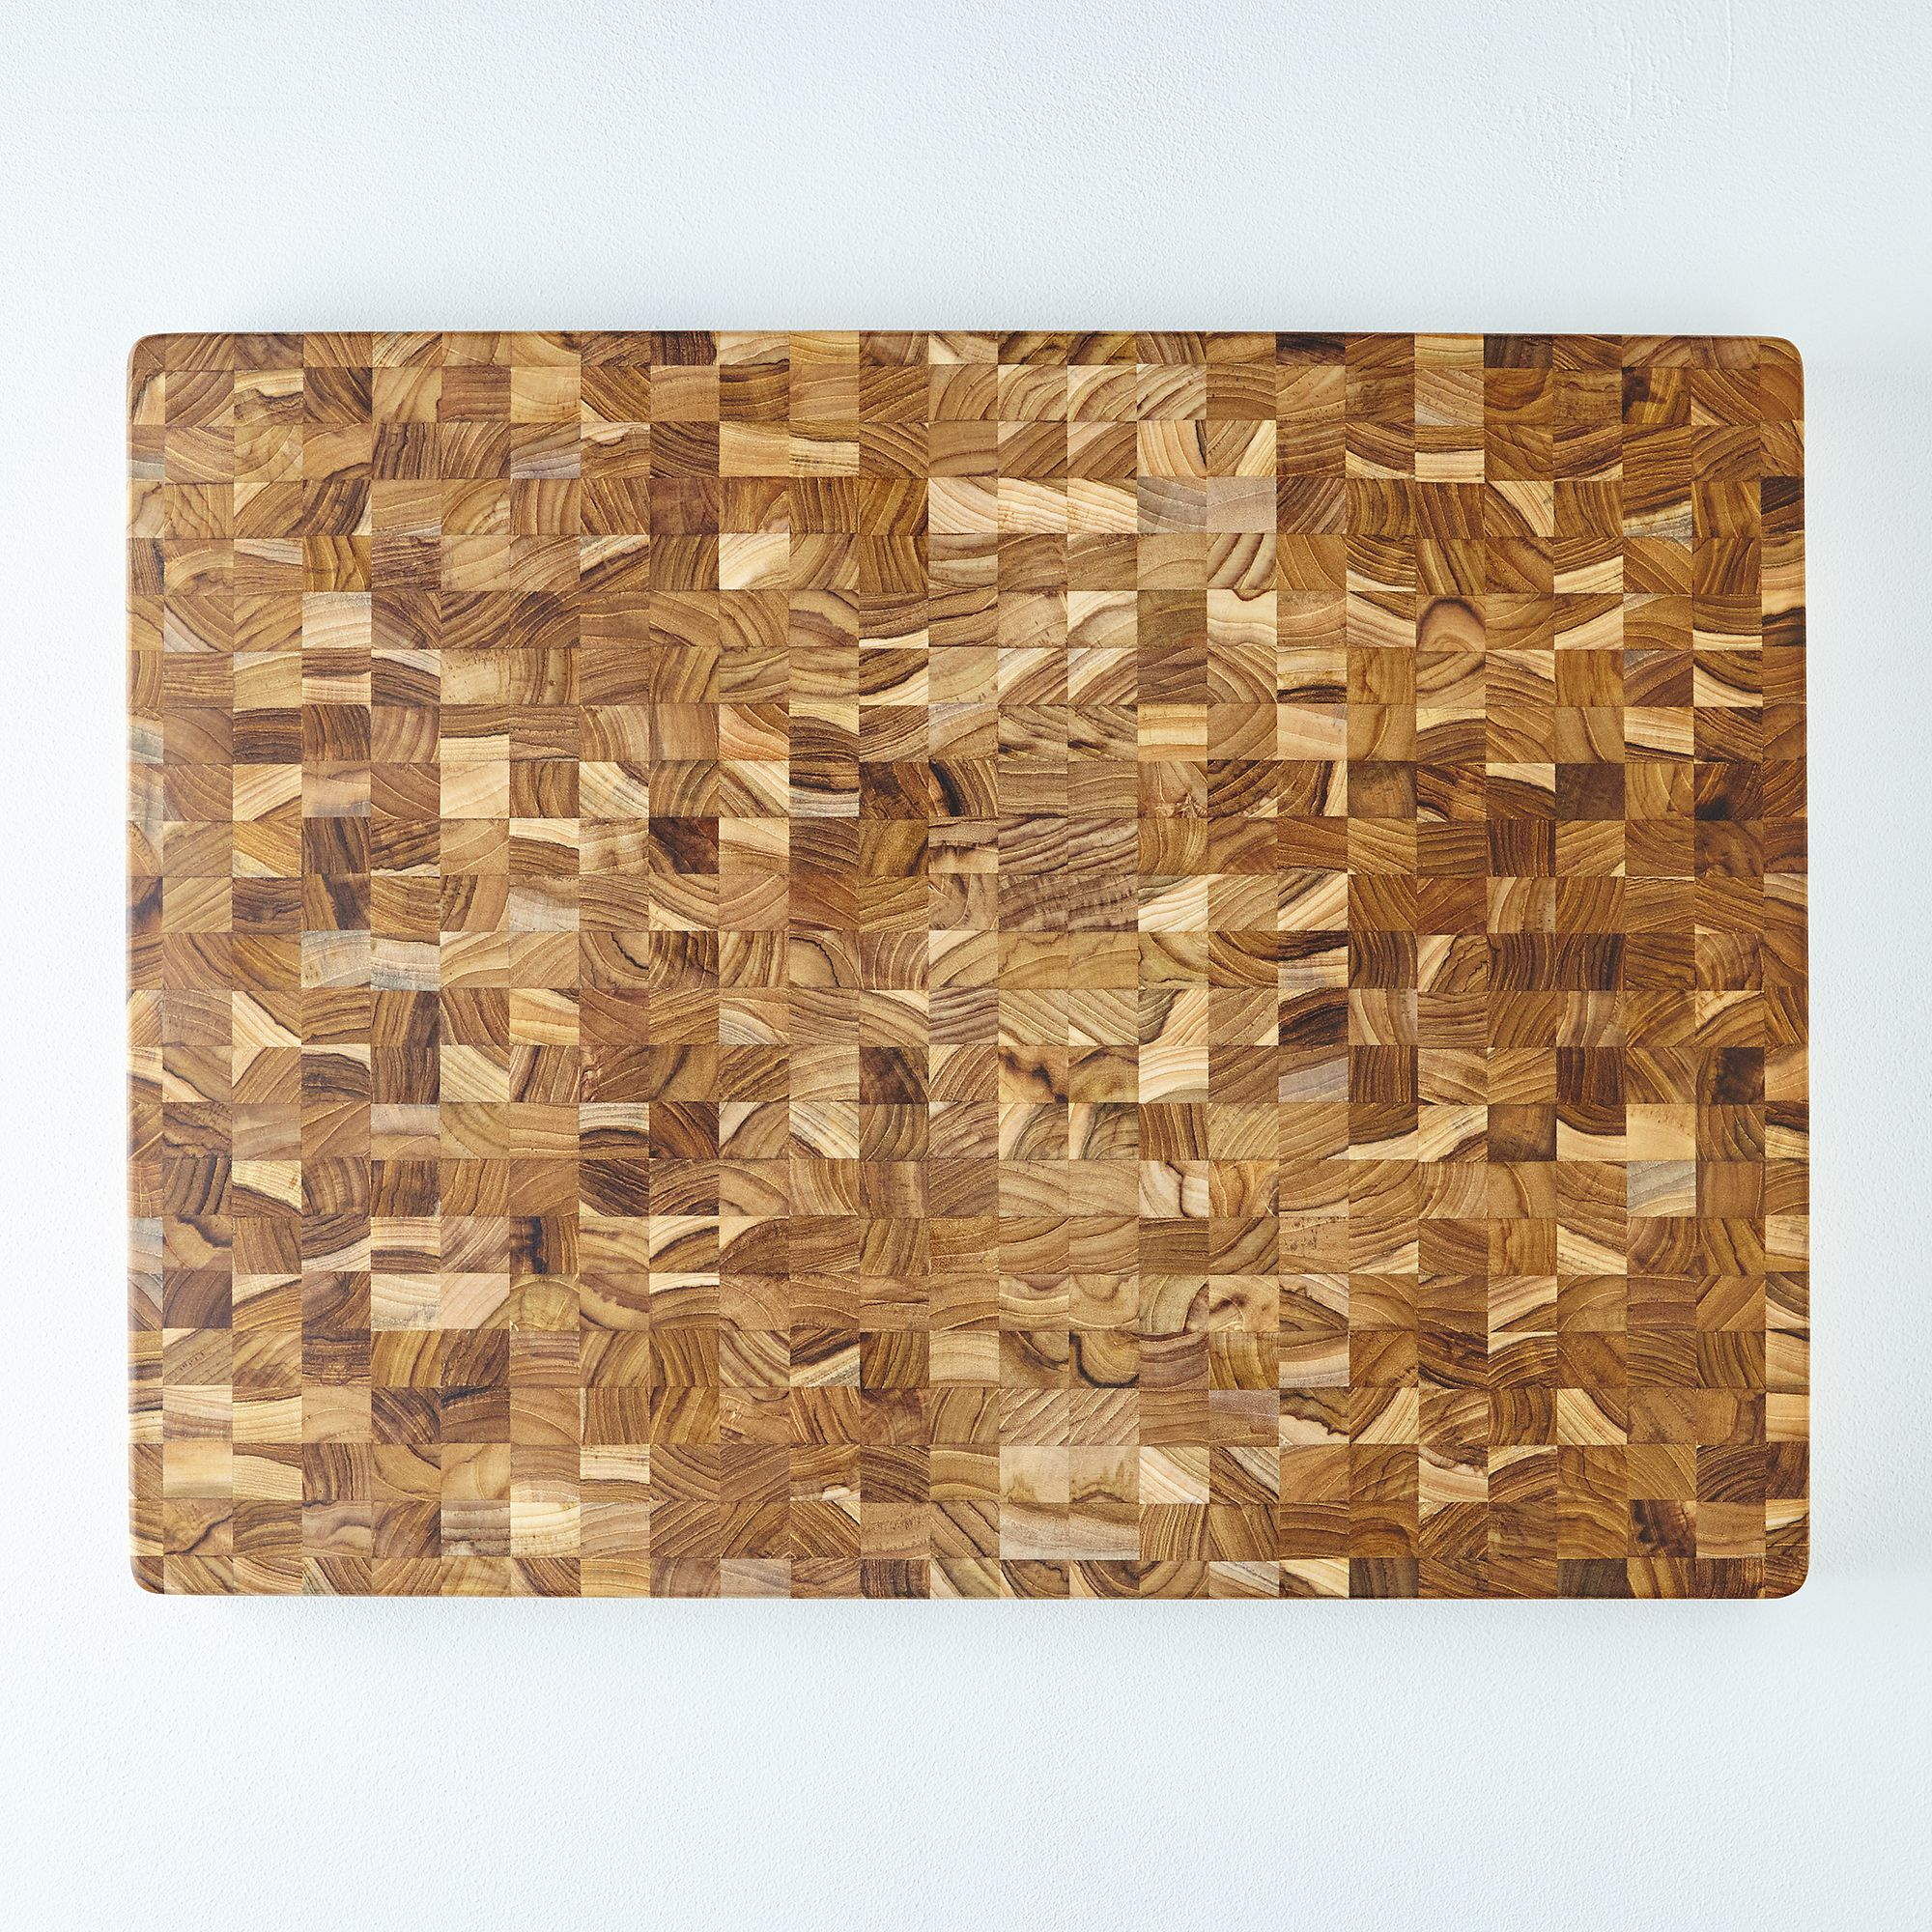 F6bc3046 a0f8 11e5 a190 0ef7535729df  2015 1009 proteak extra large end grain cutting board plain silo rocky luten 003